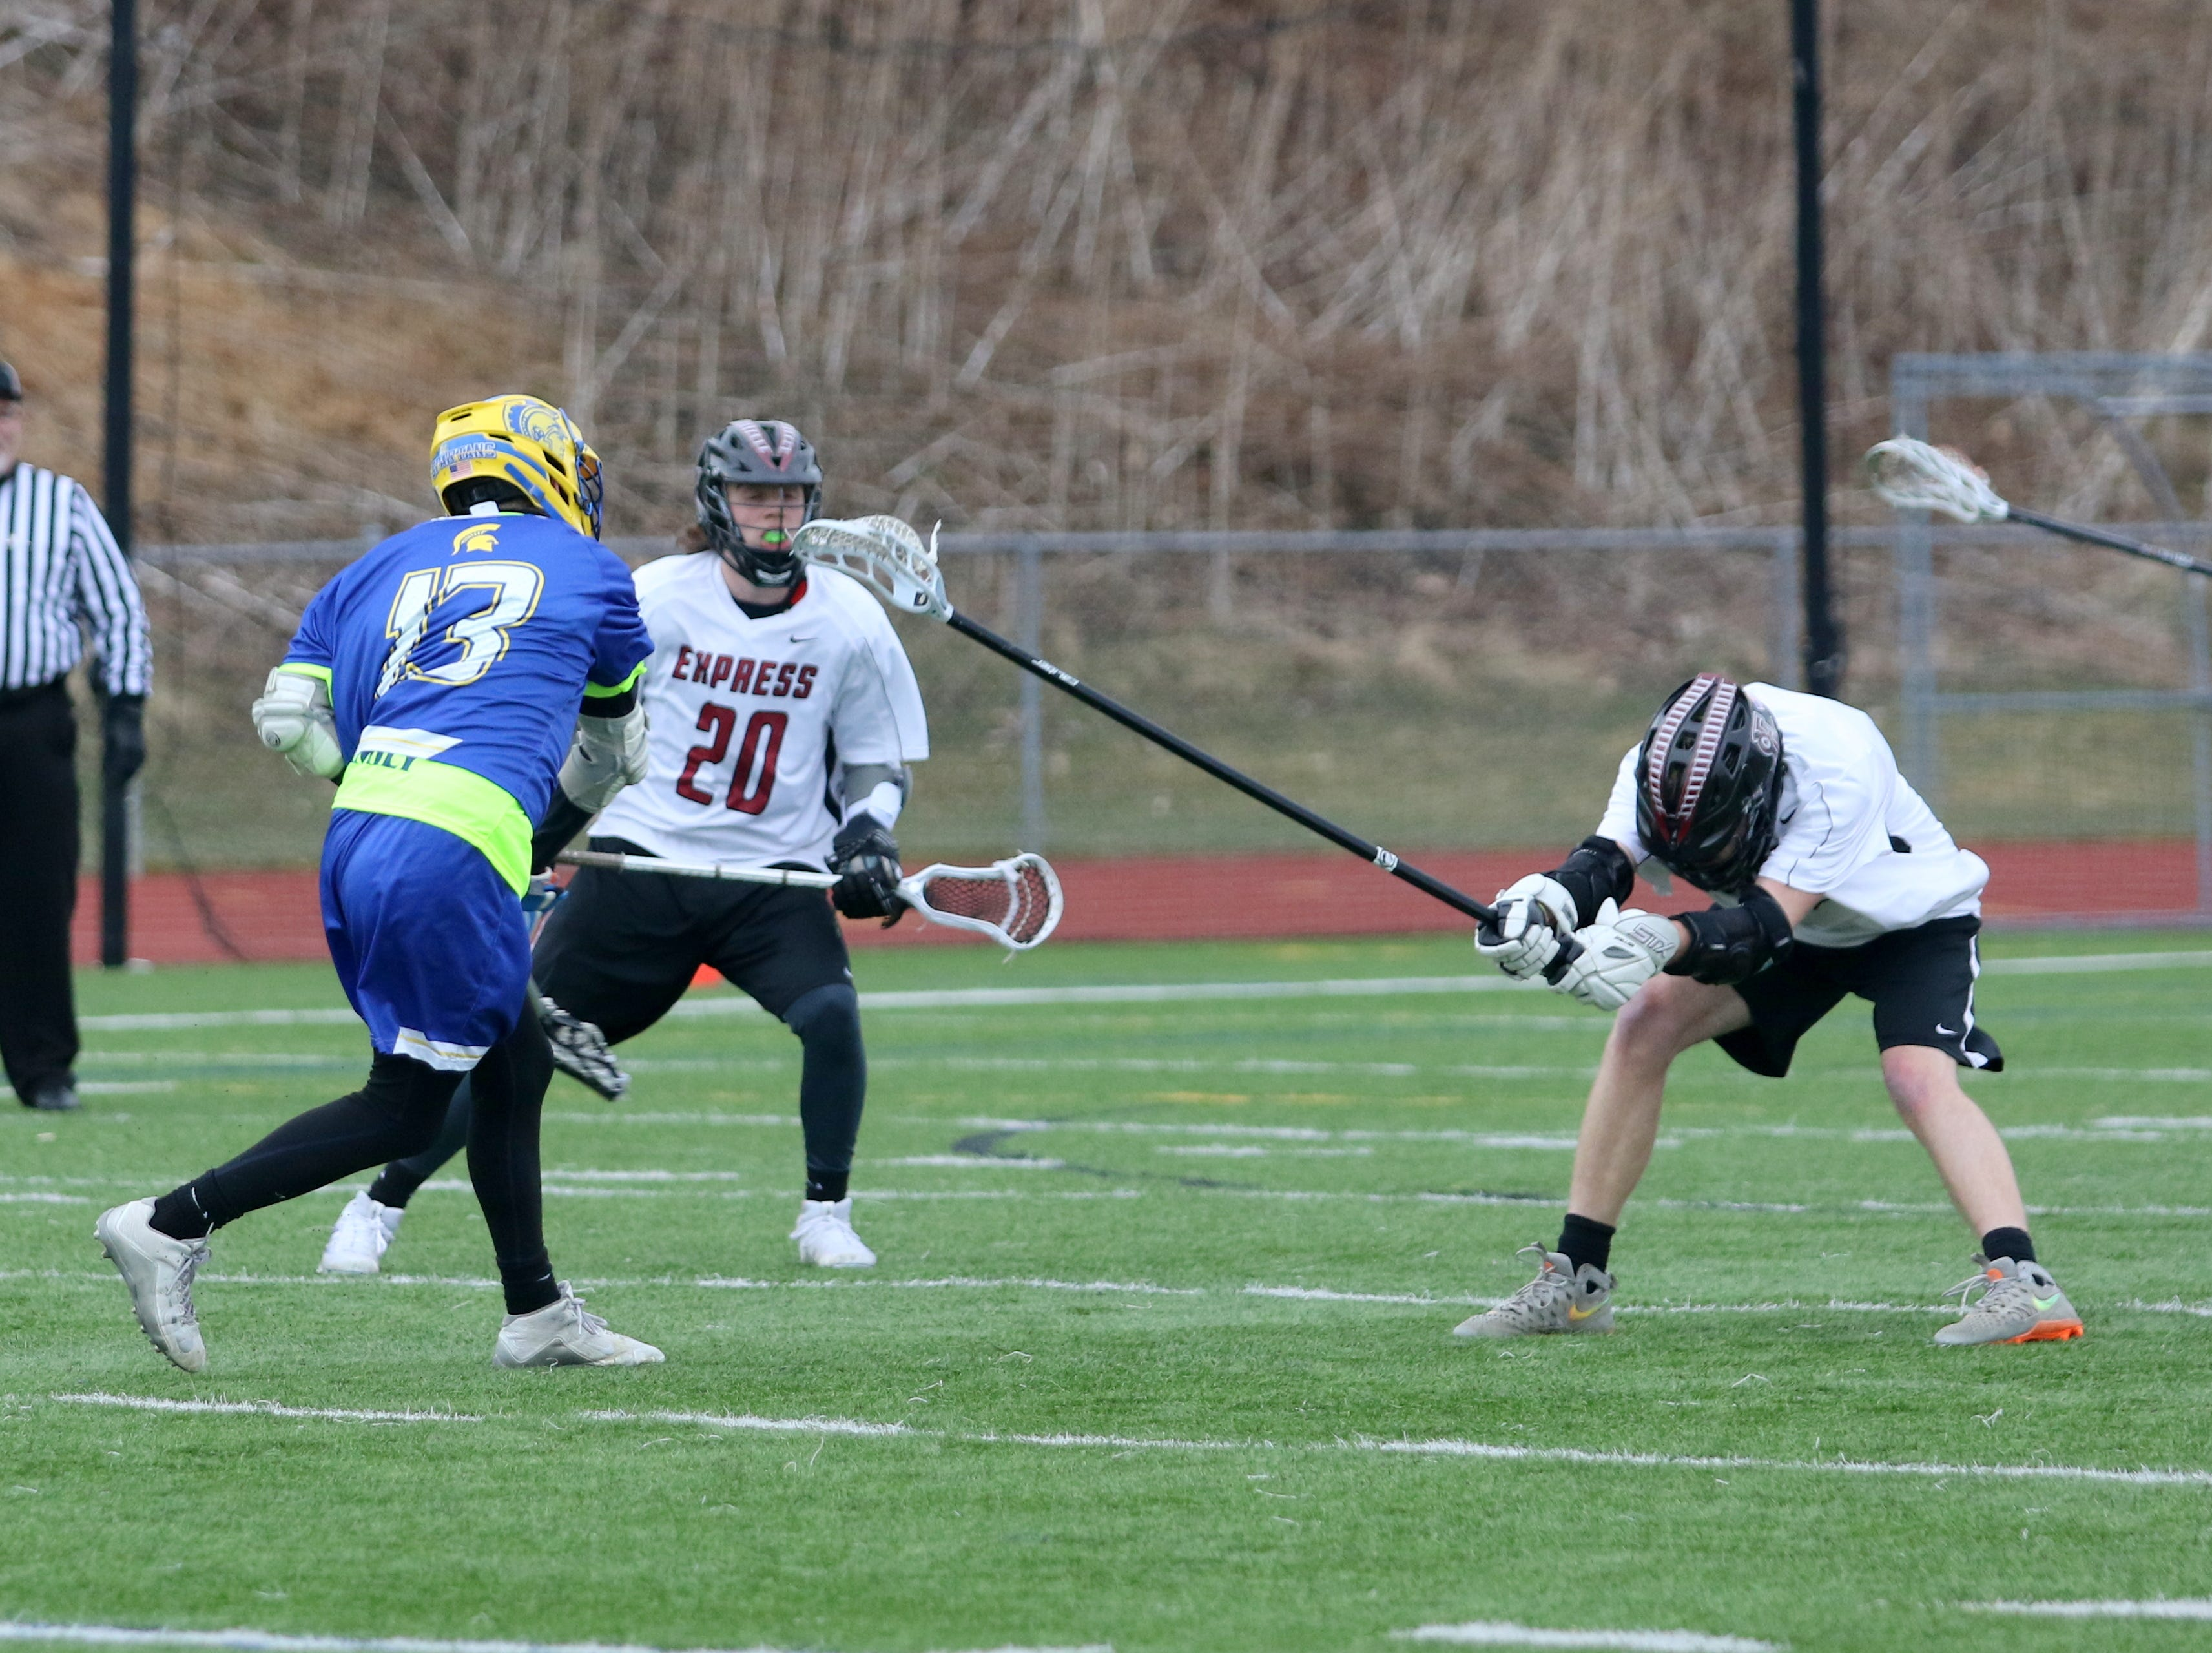 Action from Elmira's 13-4 win over Maine-Endwell in boys lacrosse April 5, 2019 at Ernie Davis Academy.